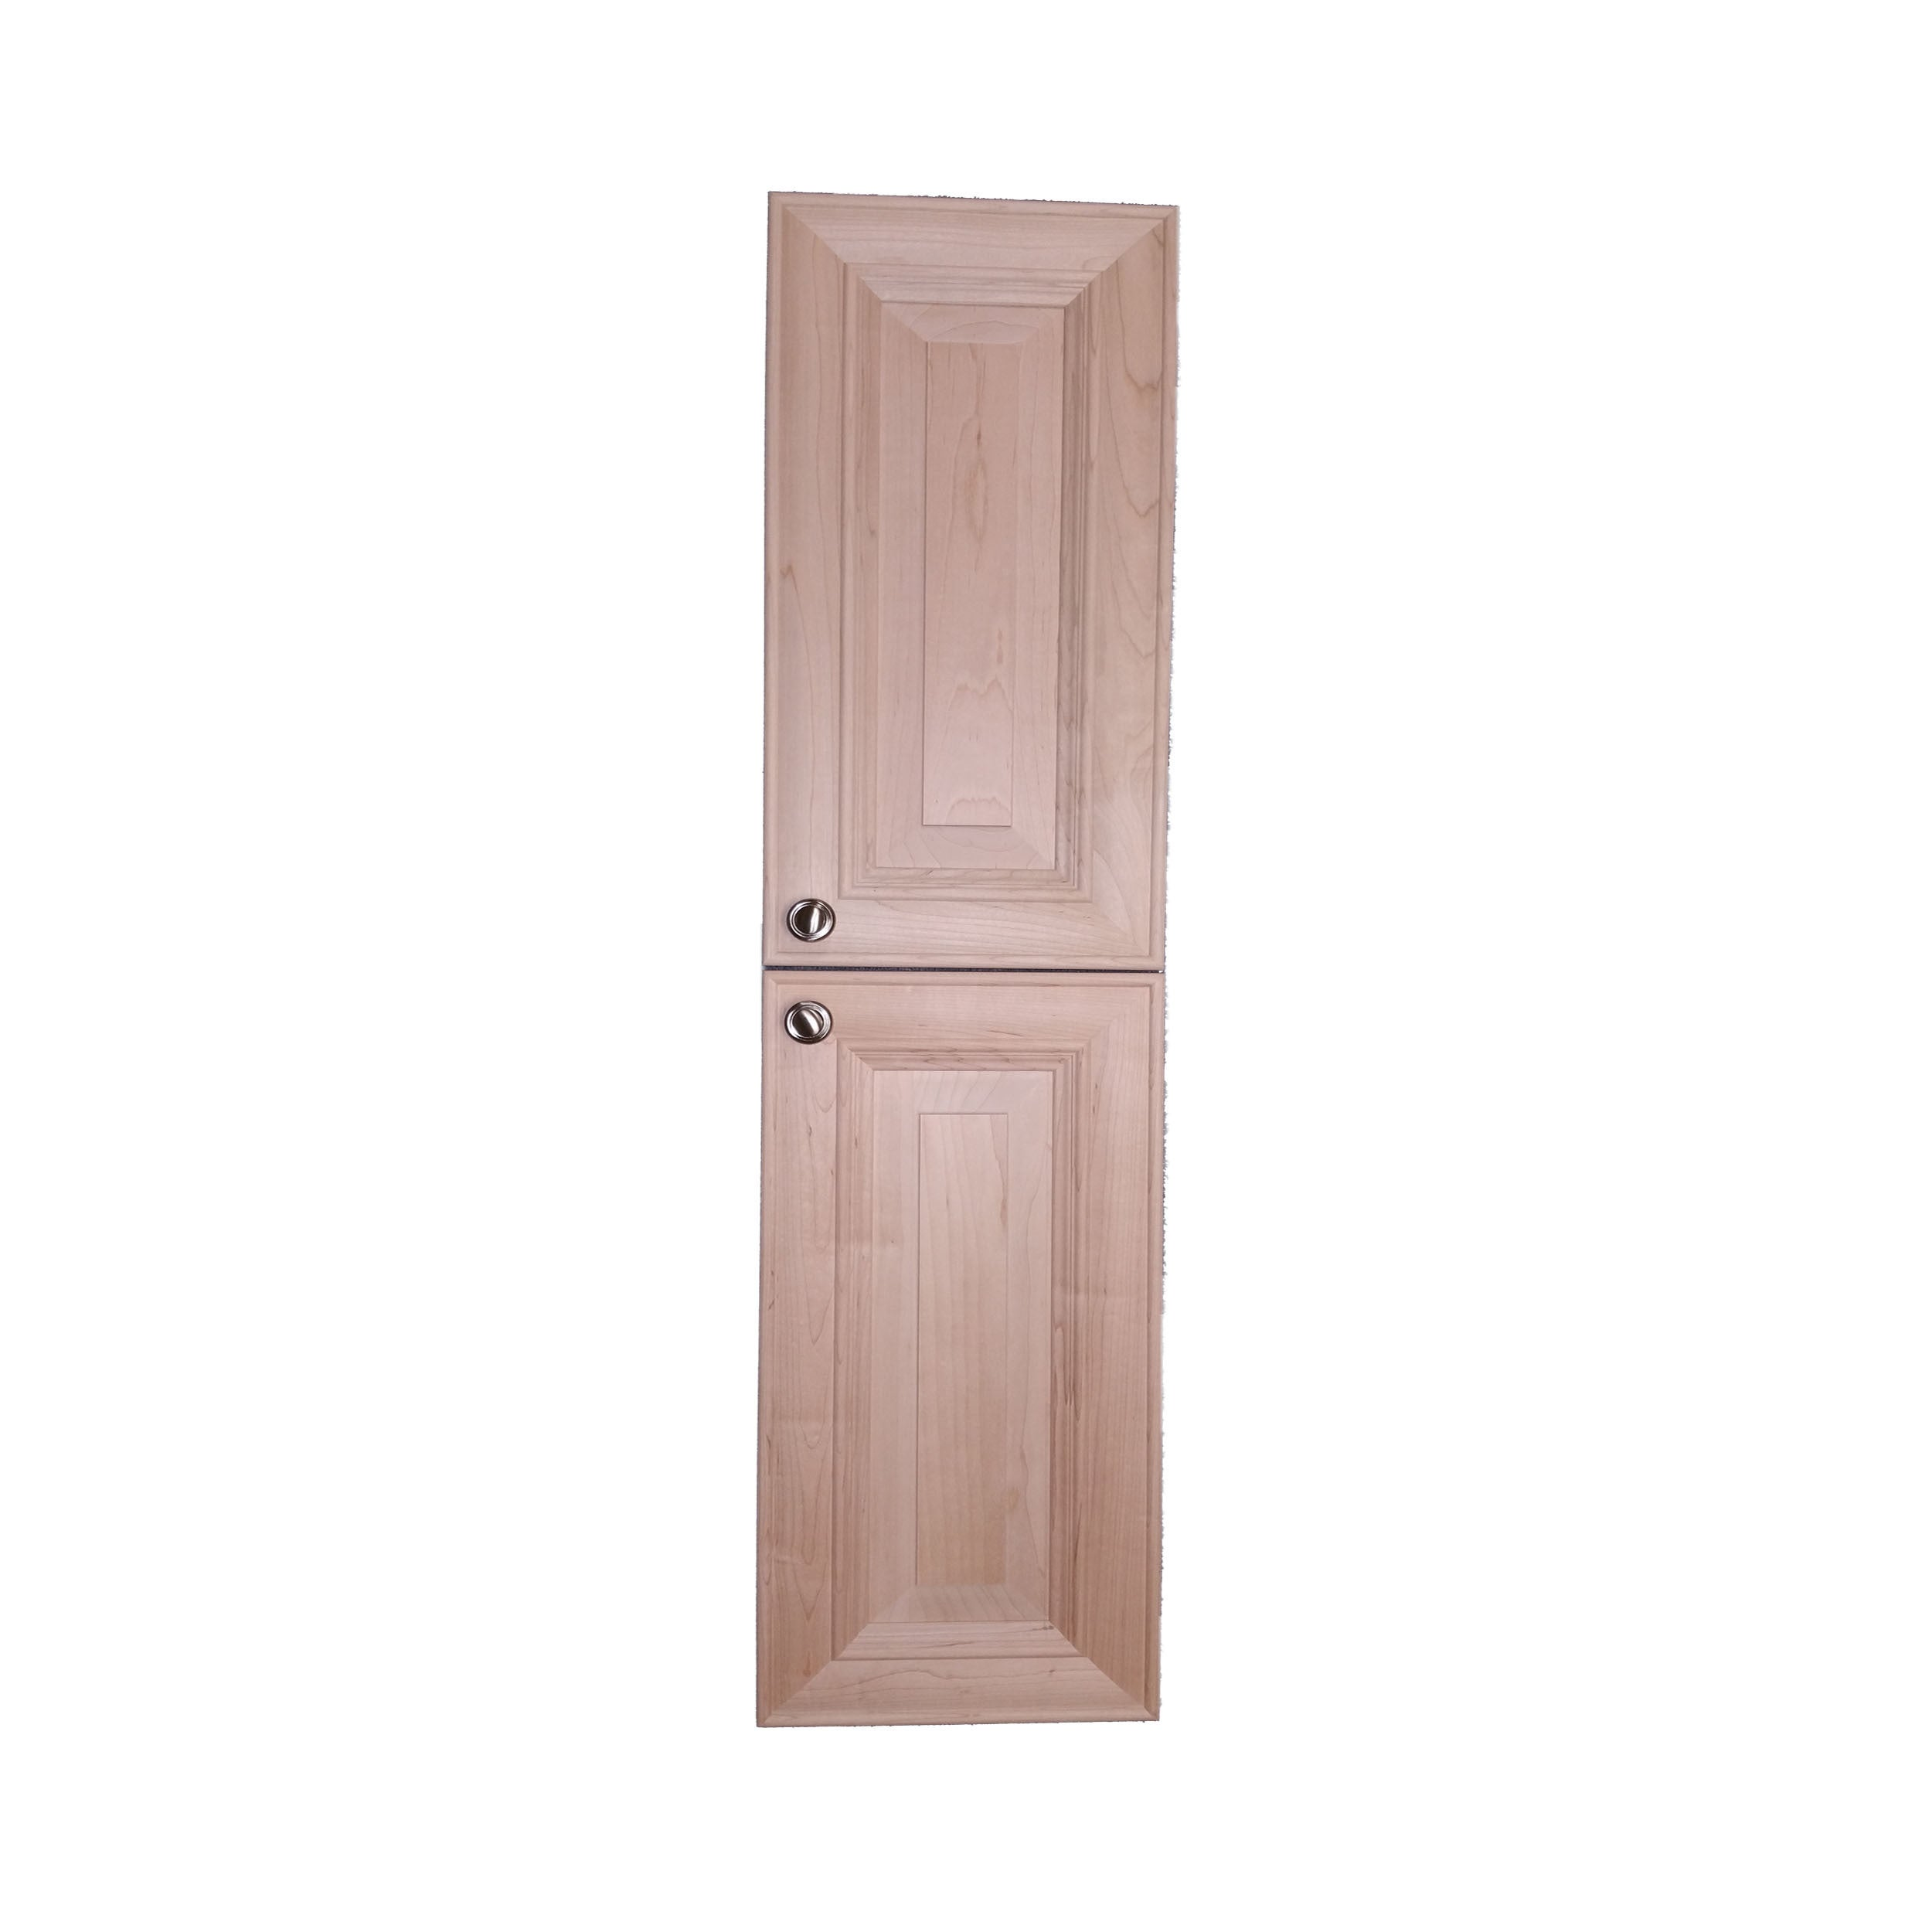 Wg Wood Products Kendall 57 Inch 2 5 Deep Frameless Narrow Recessed Bath Pantry Style Storage Cabinet Free Shipping Today 12511843